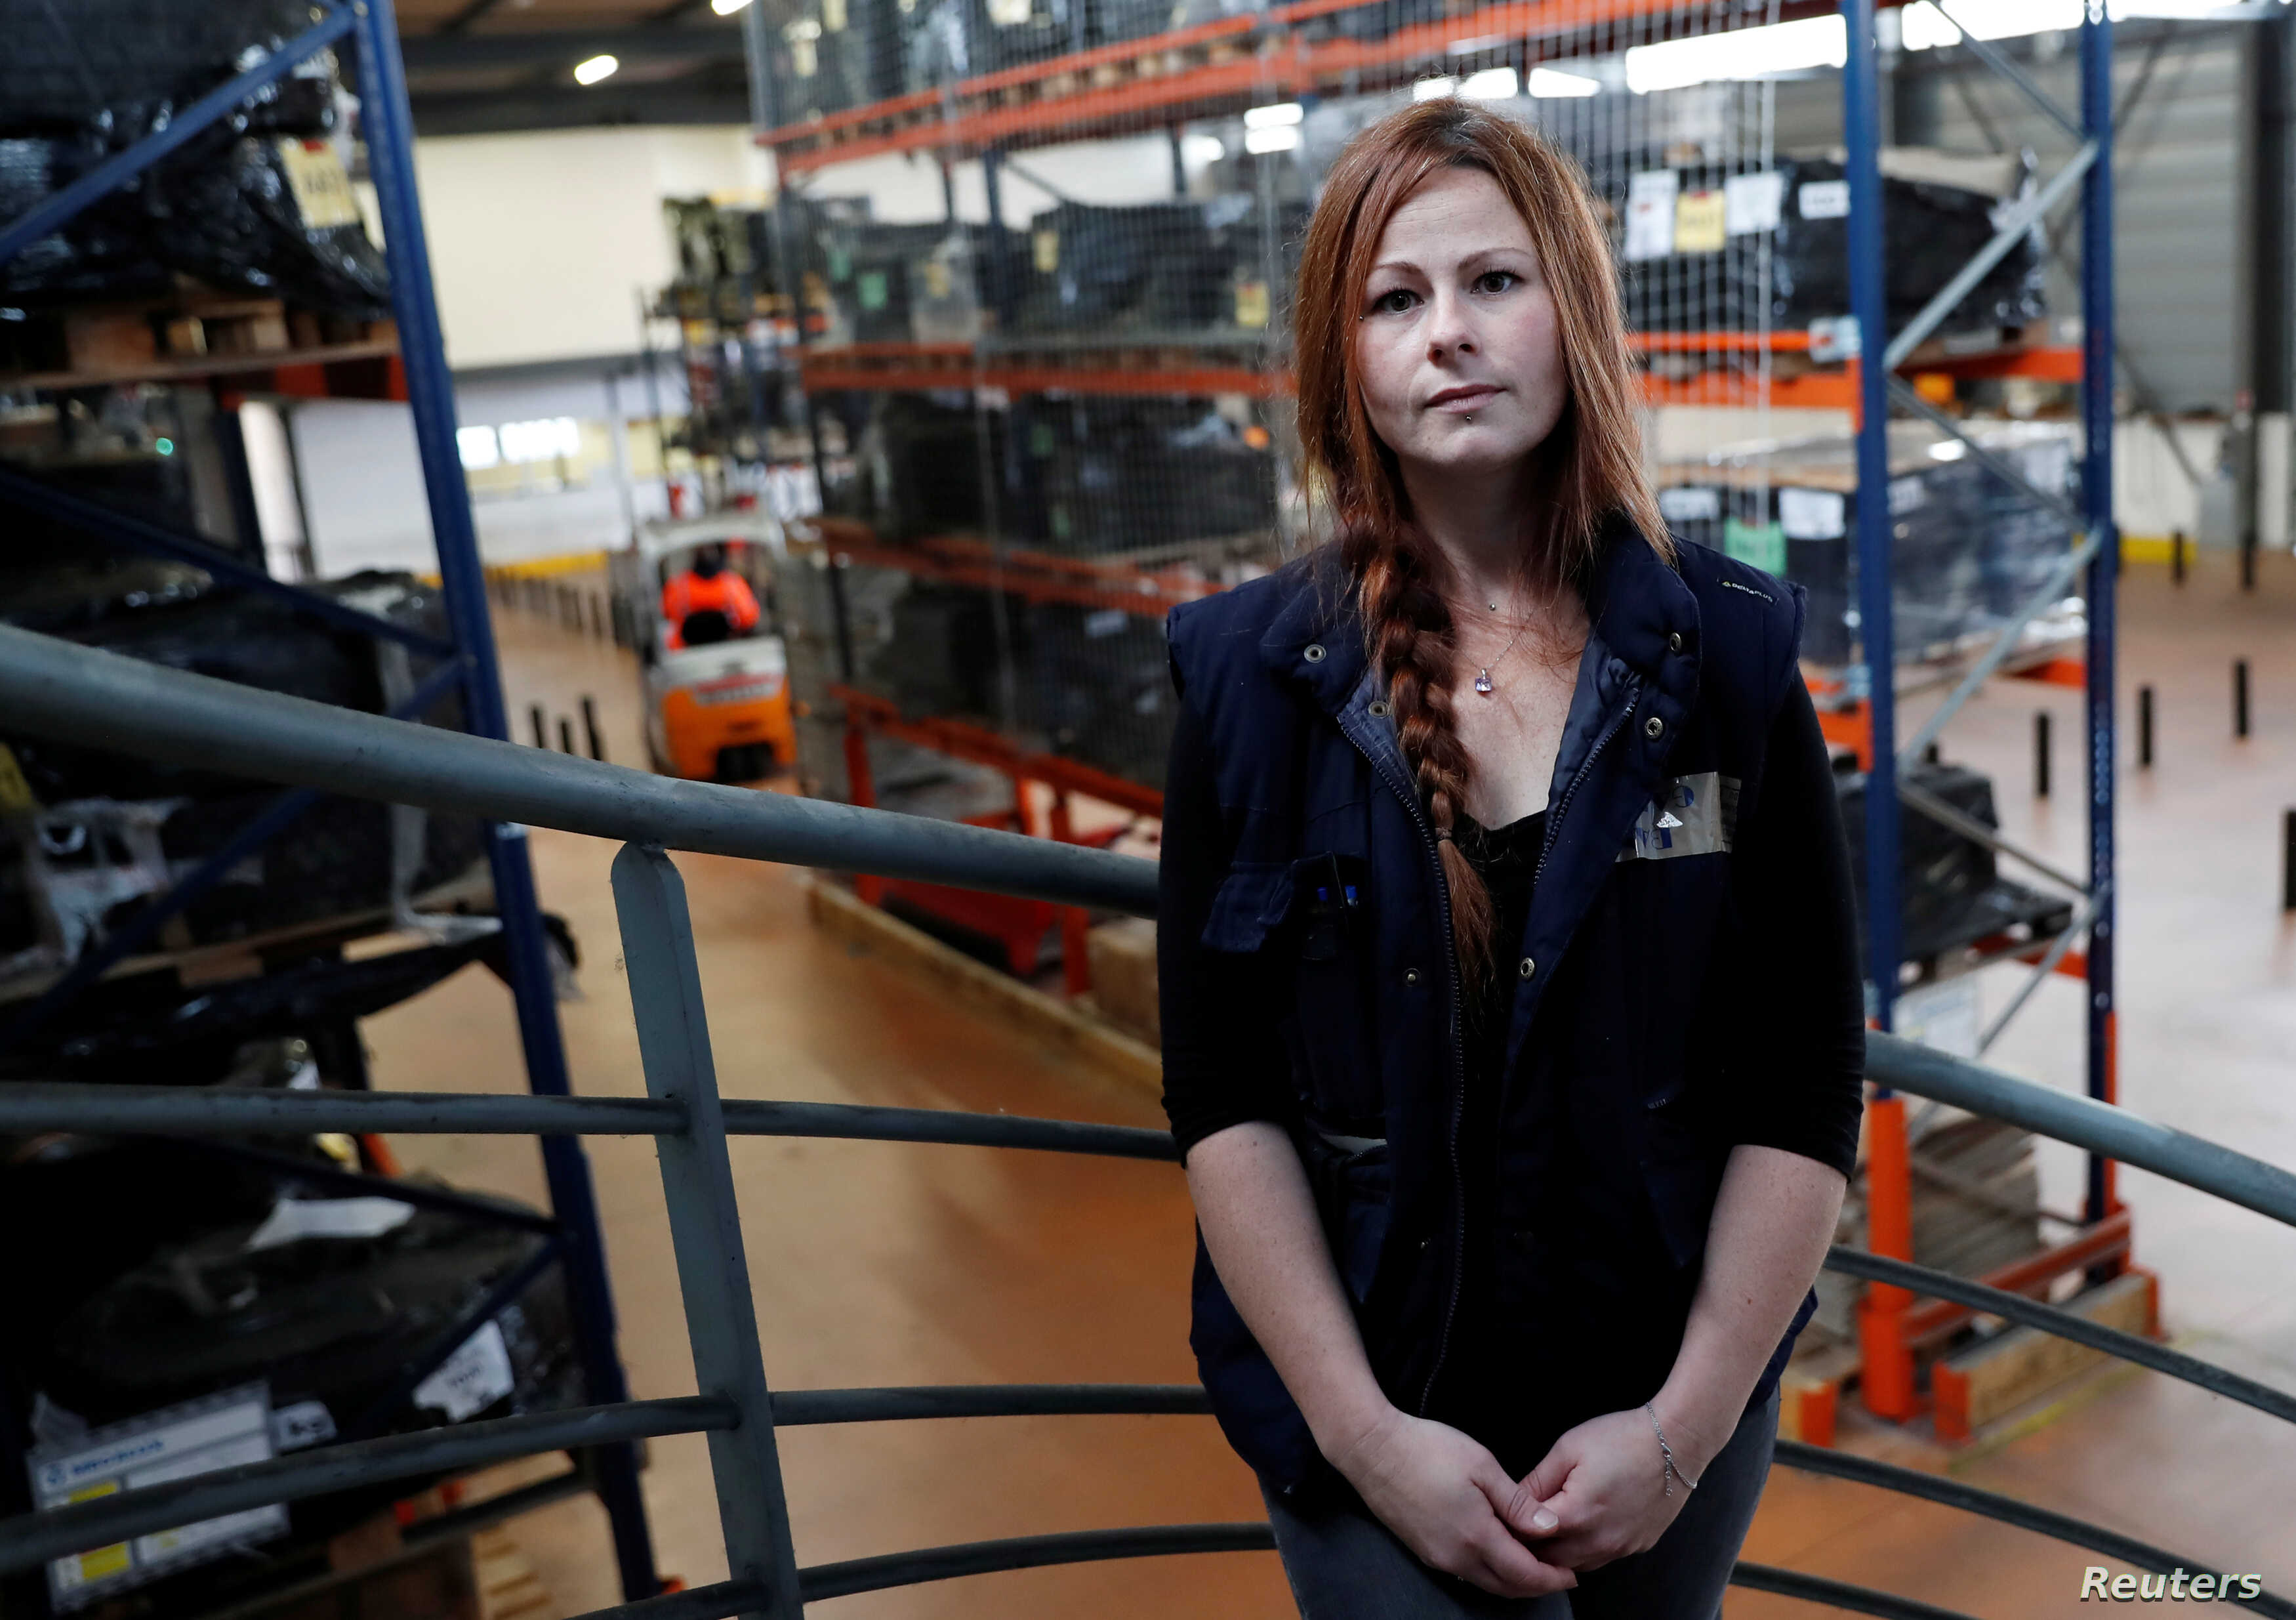 French apprentice Celine Galland, 31 years old, poses in a training area at ''AFTRAL'', a transport and logistics training centre, in Savigny-le-Temple, France, Oct. 26, 2017.